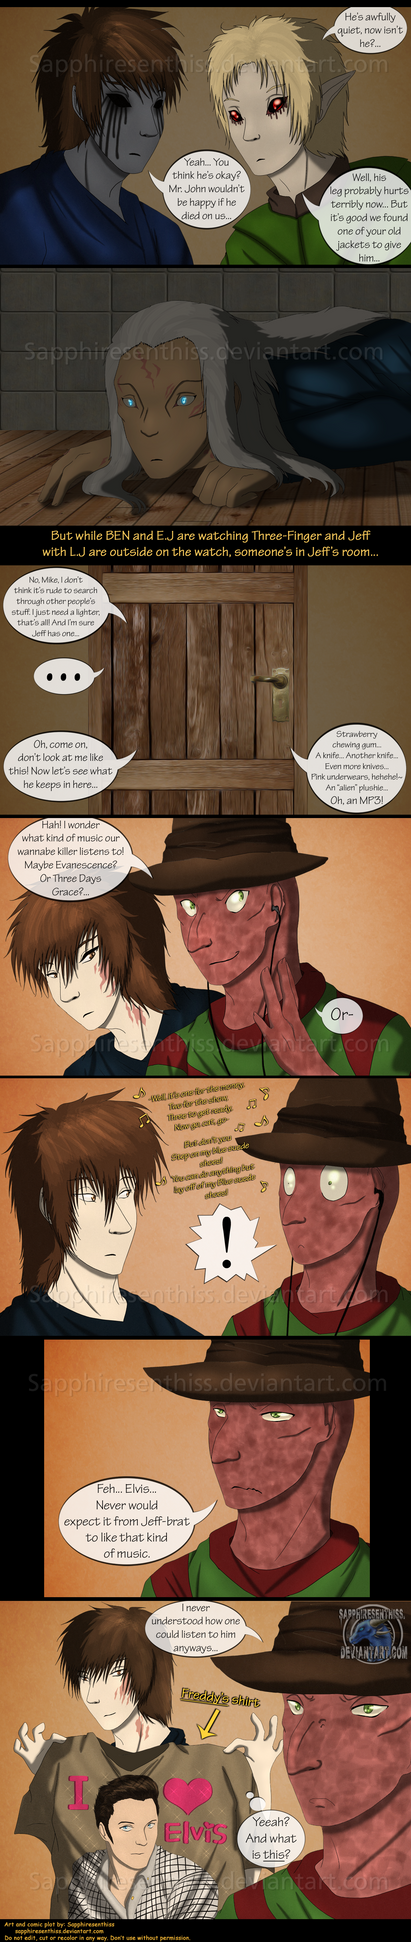 Adventures With Jeff The Killer - PAGE 199 by Sapphiresenthiss